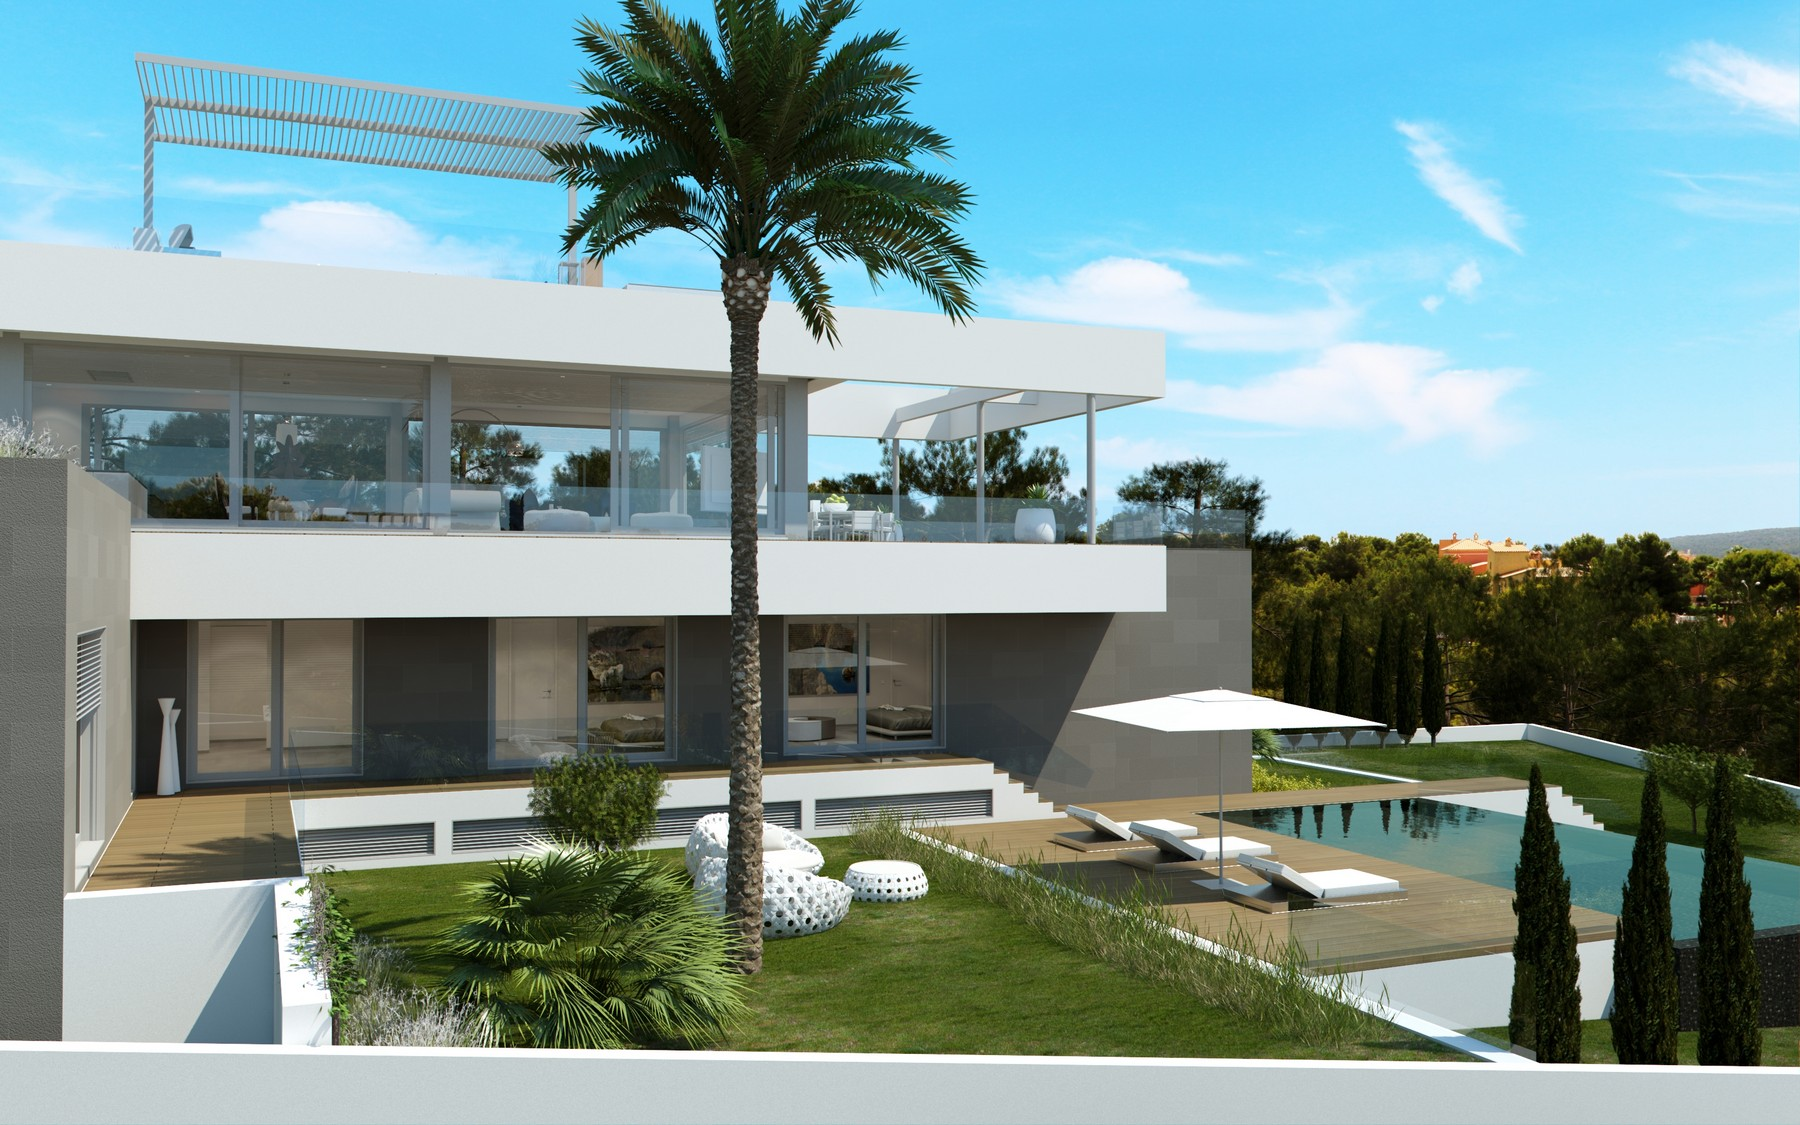 Single Family Home for Sale at Minimalist Project in Santa Ponsa Santa Ponsa, Mallorca, 07081 Spain